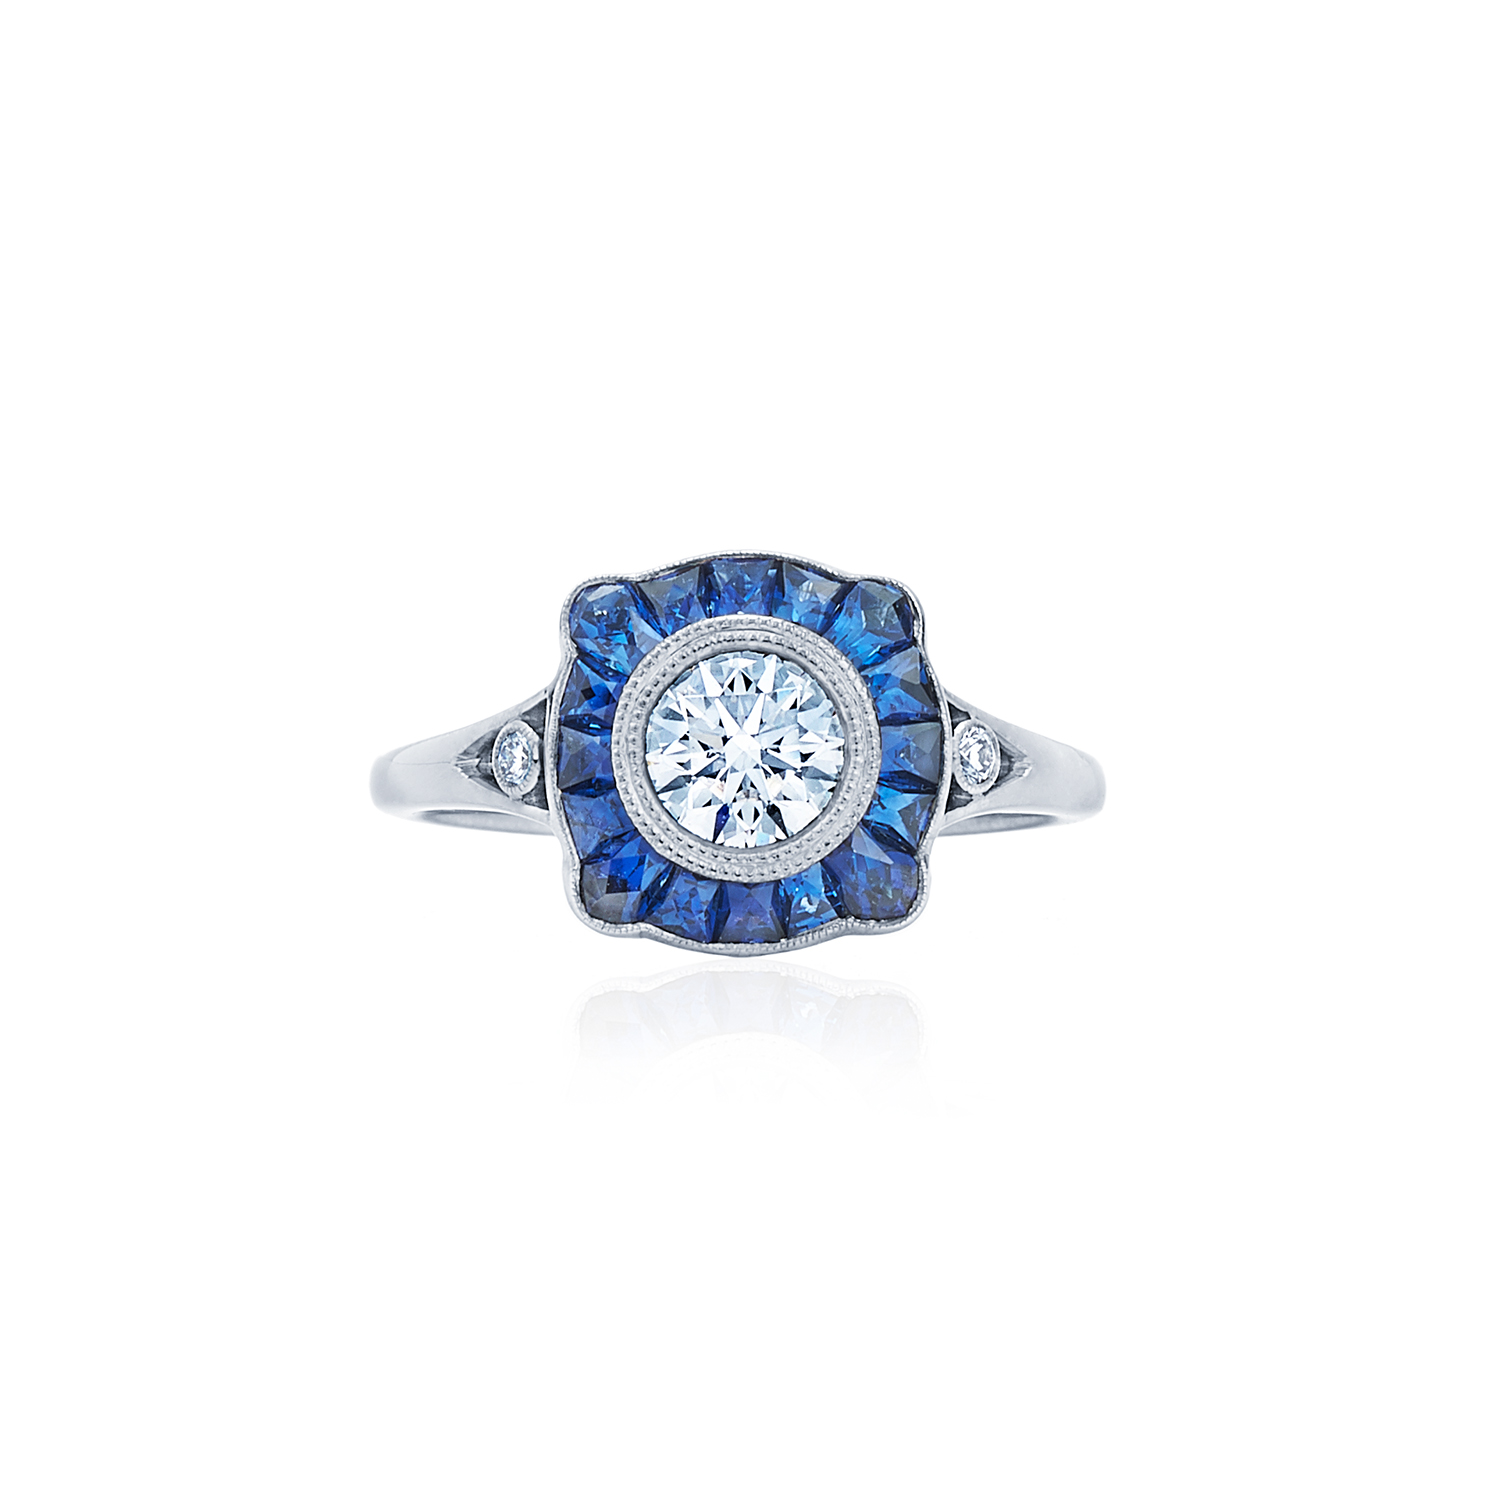 rings style solitaire in plat kwiat platinum ring cushion with stones engagement set diamond cut jewelry bullet side